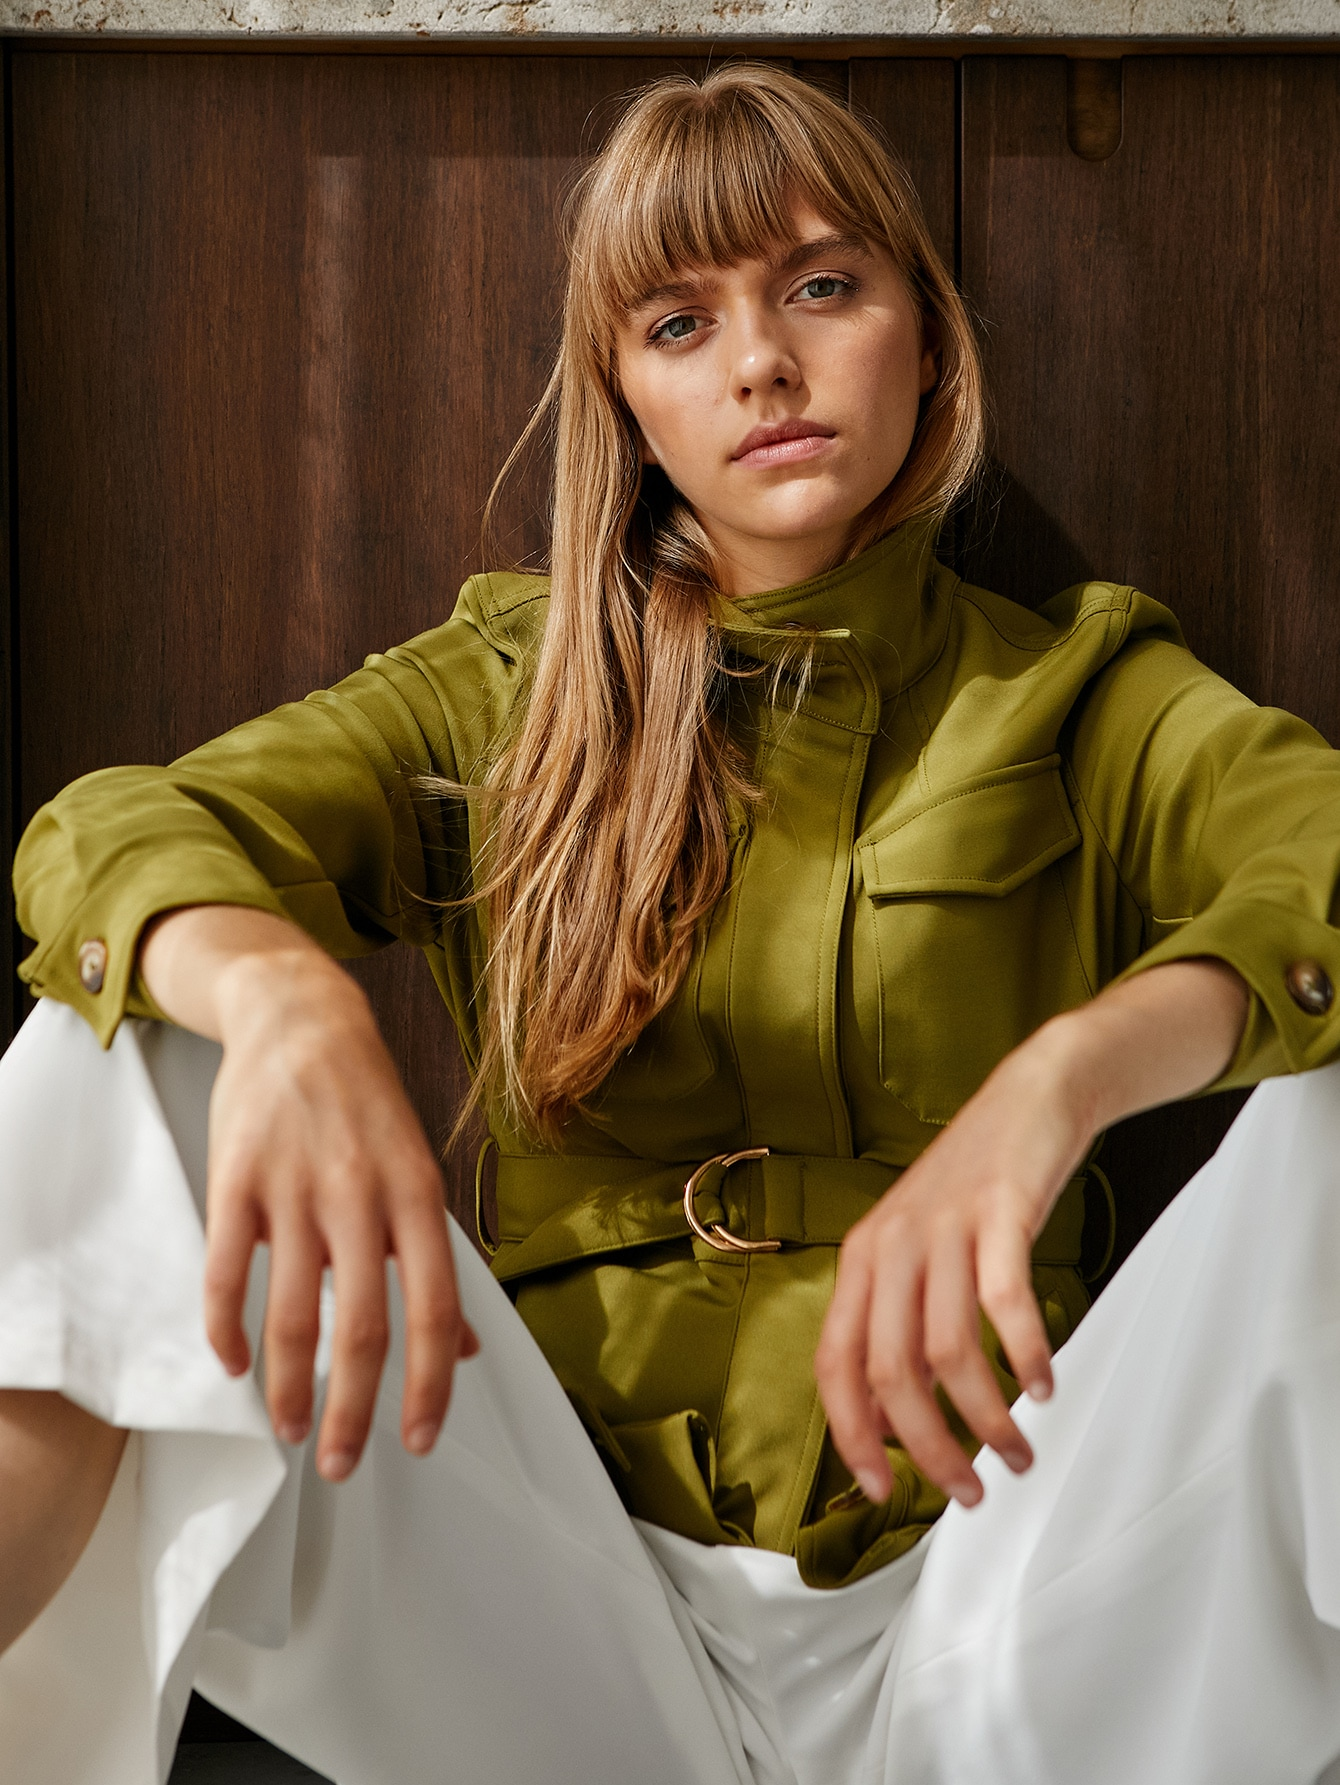 I love this Olive Green jacket! Beautiful autumn look.